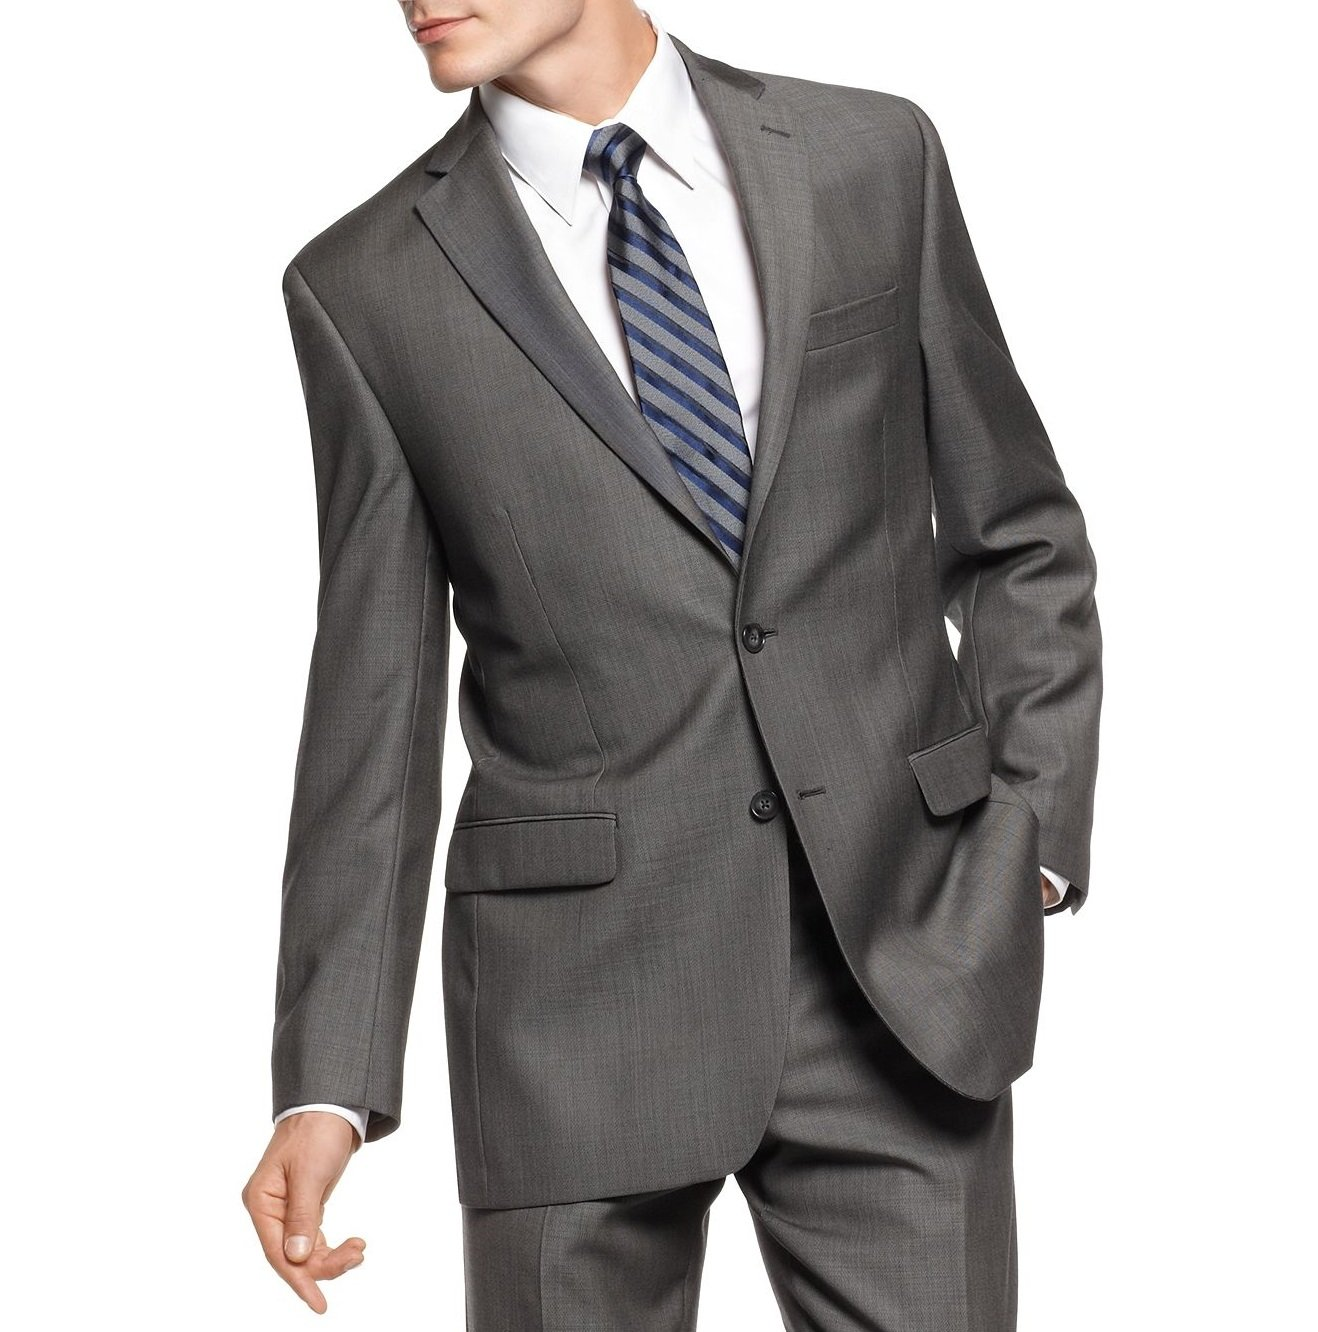 Calvin Klein Slim Fit Charcoal Pindot Two Button Wool New Mens Suit Set (42S 34W x 34L)